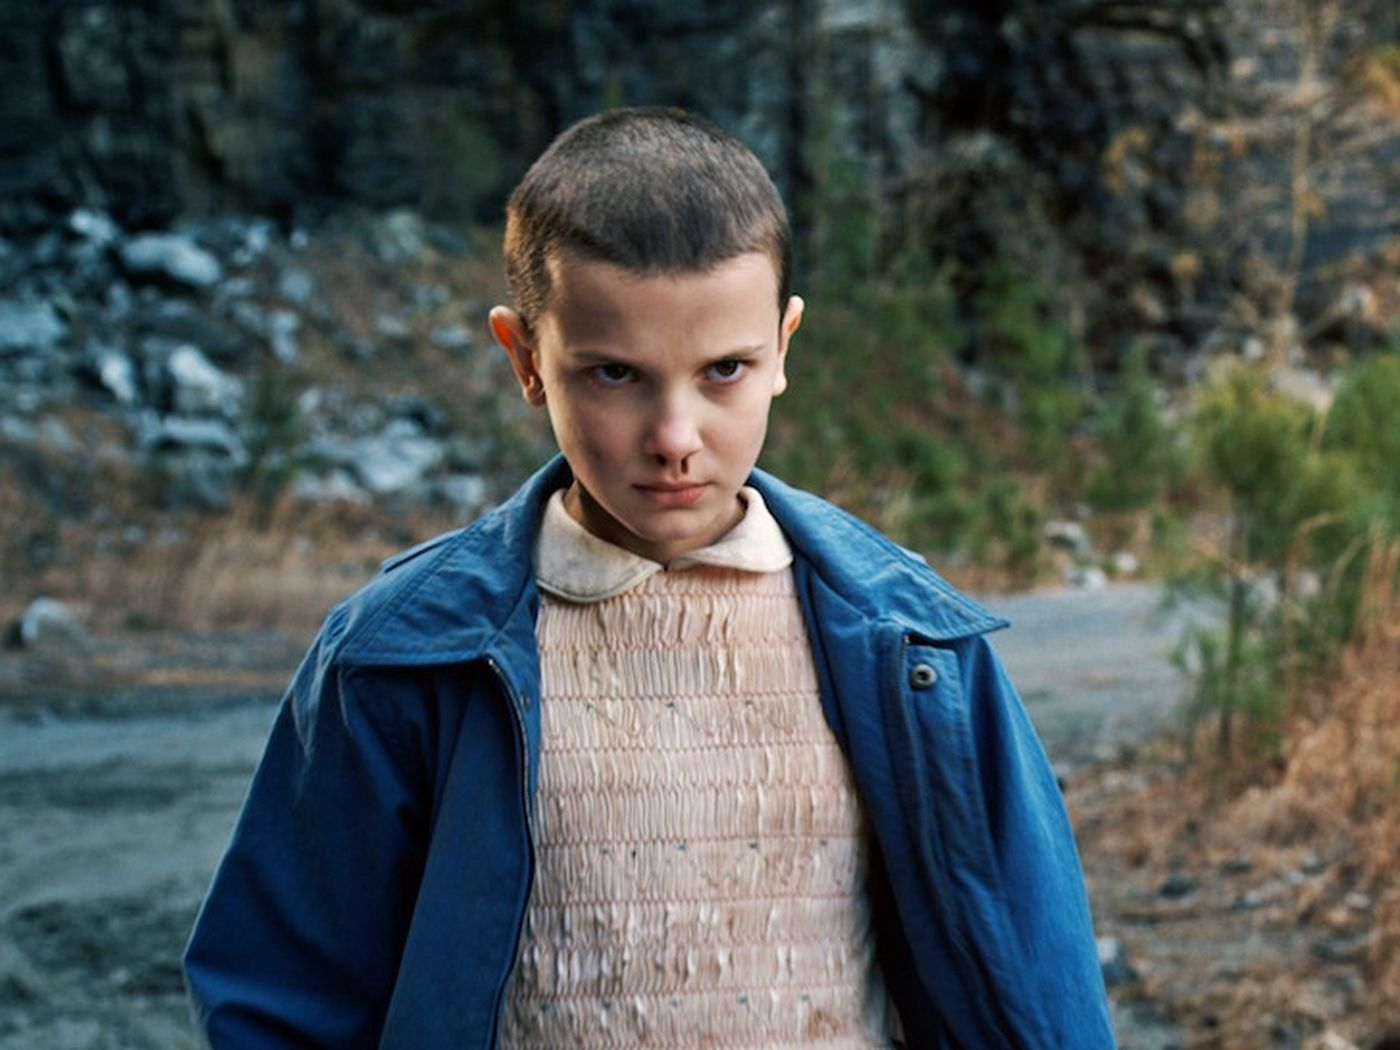 New Stranger Things season 3 teaser includes official